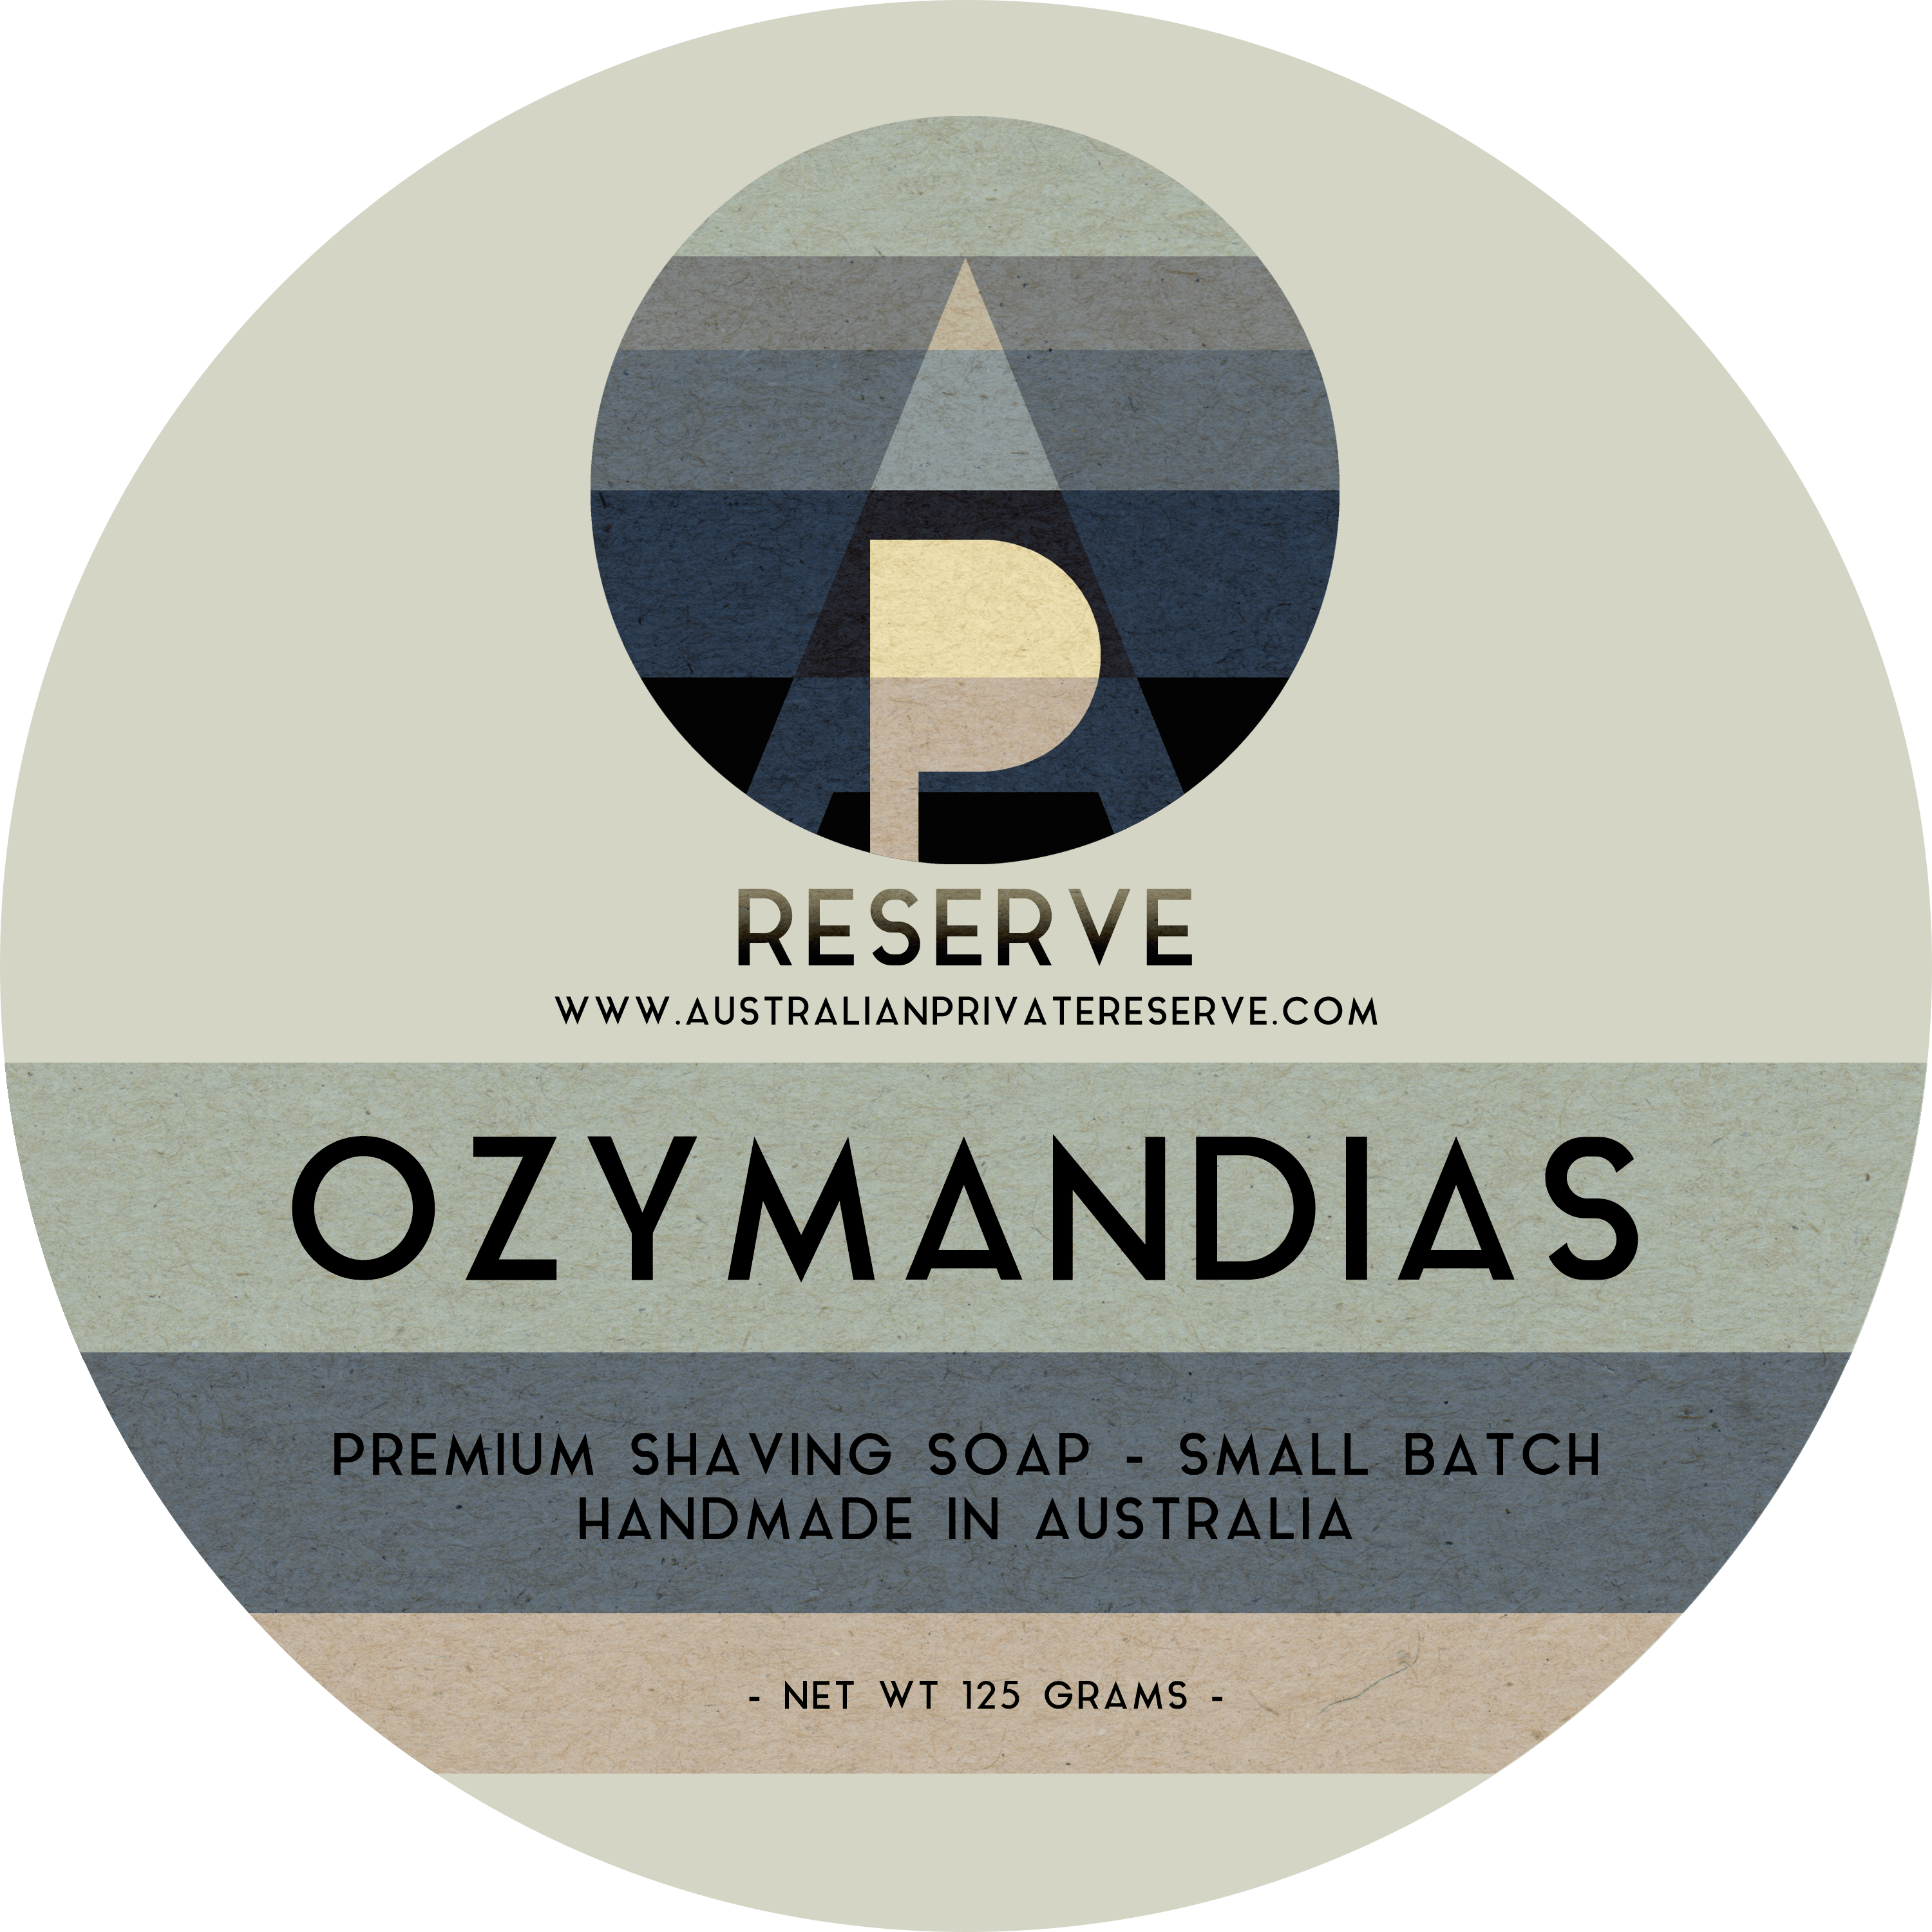 Australian Private Reserve - Ozymandias - Soap image